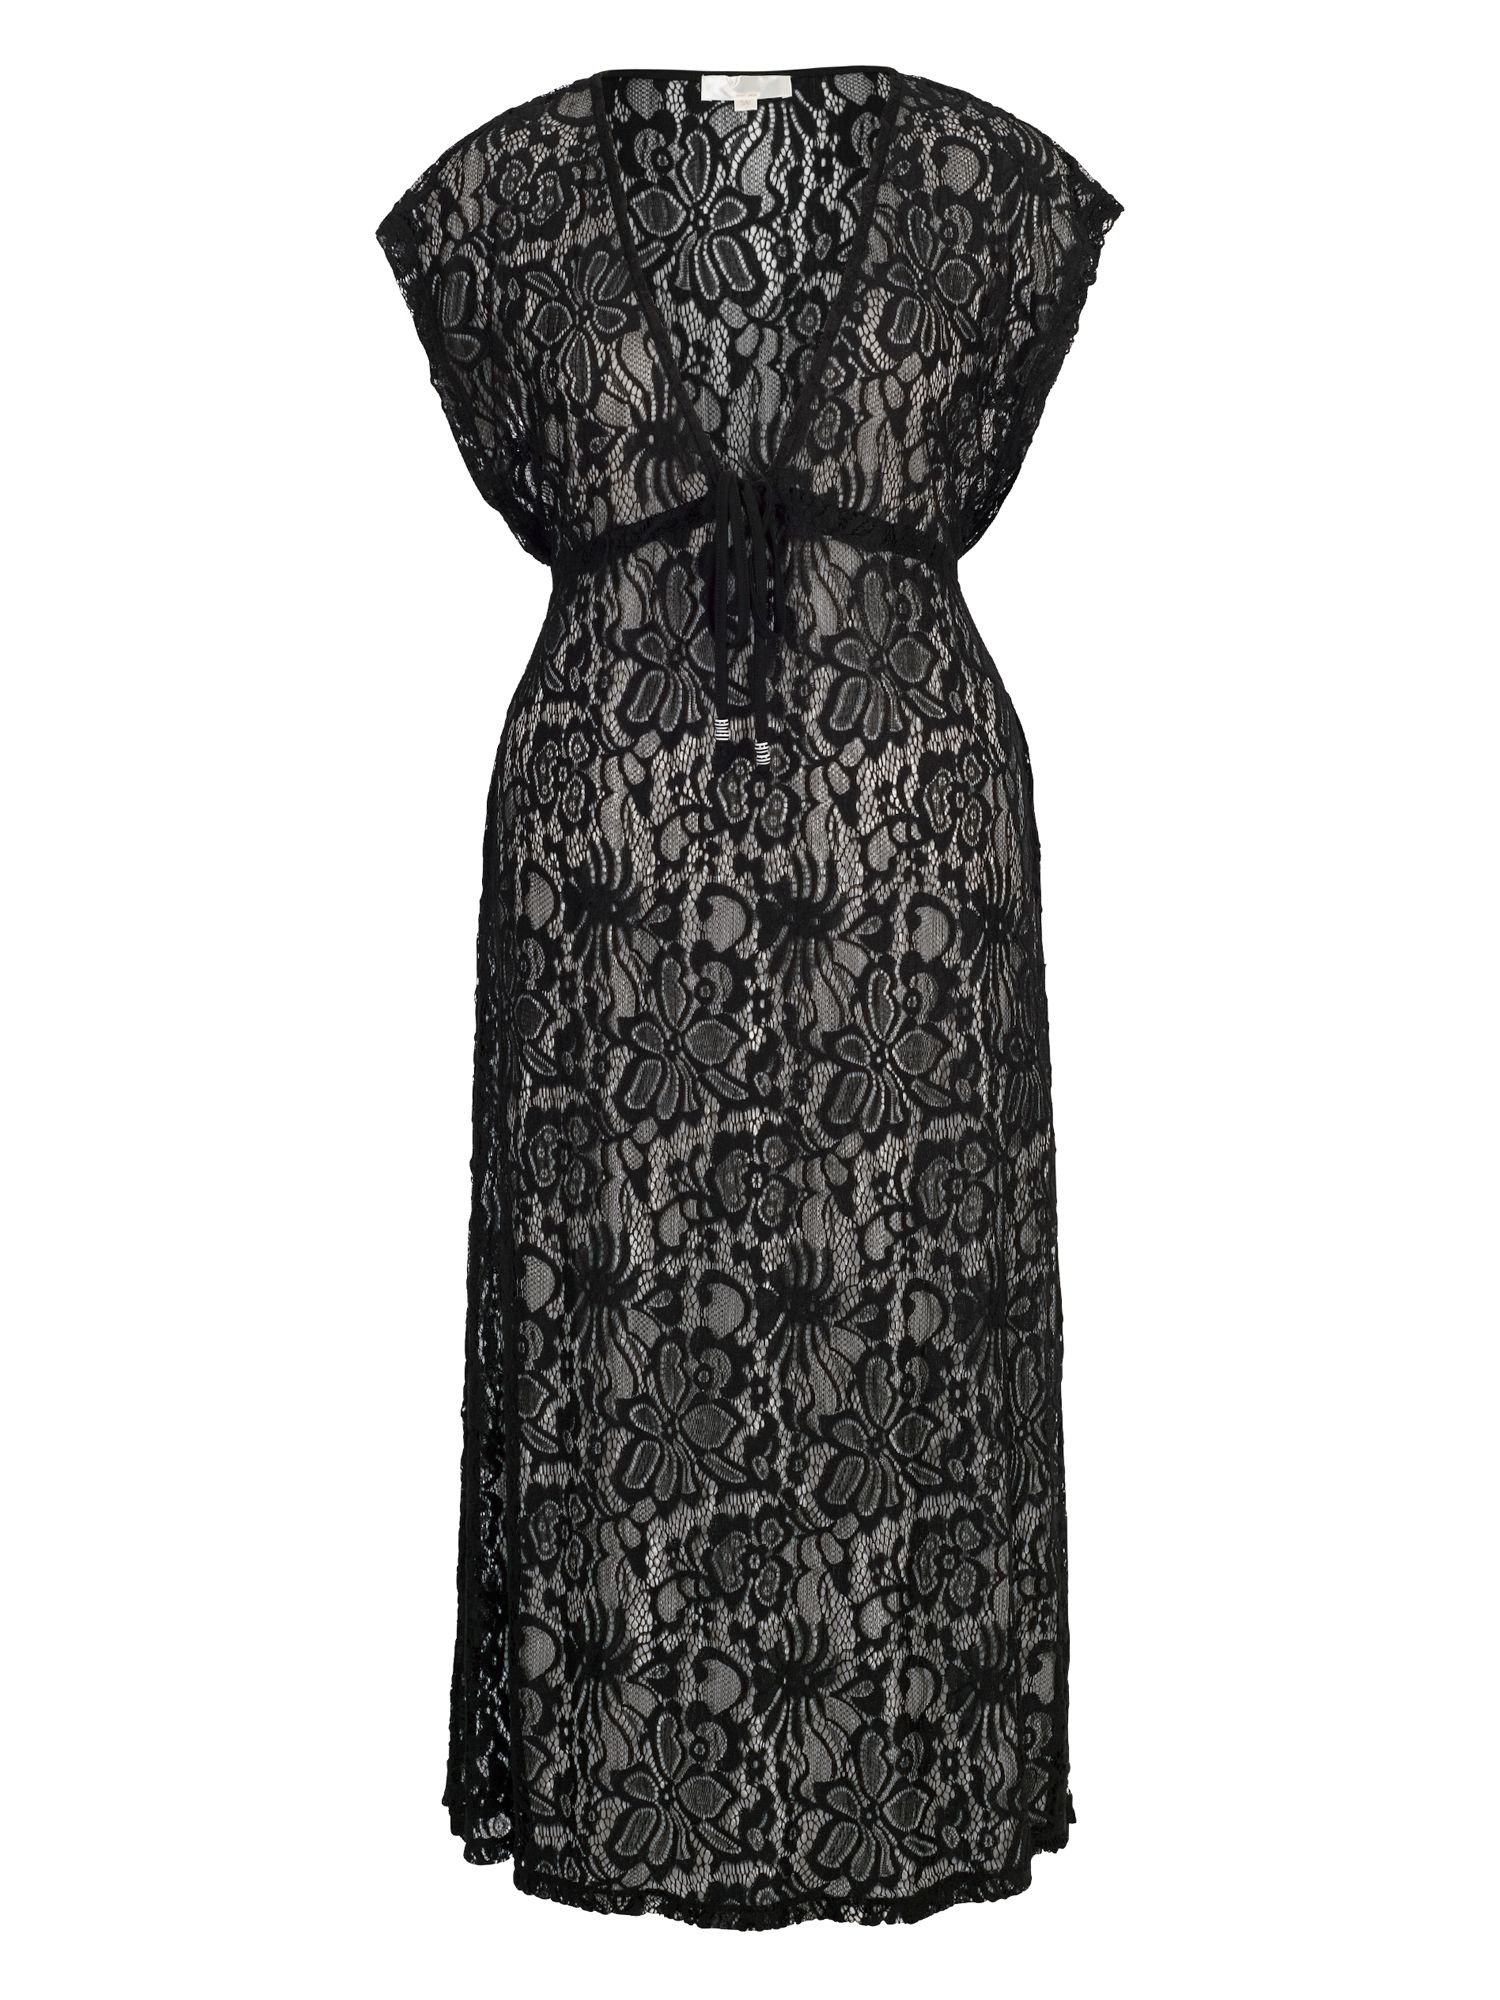 Chesca Lace Maxi Cover Up with Cap Sleeve, Black